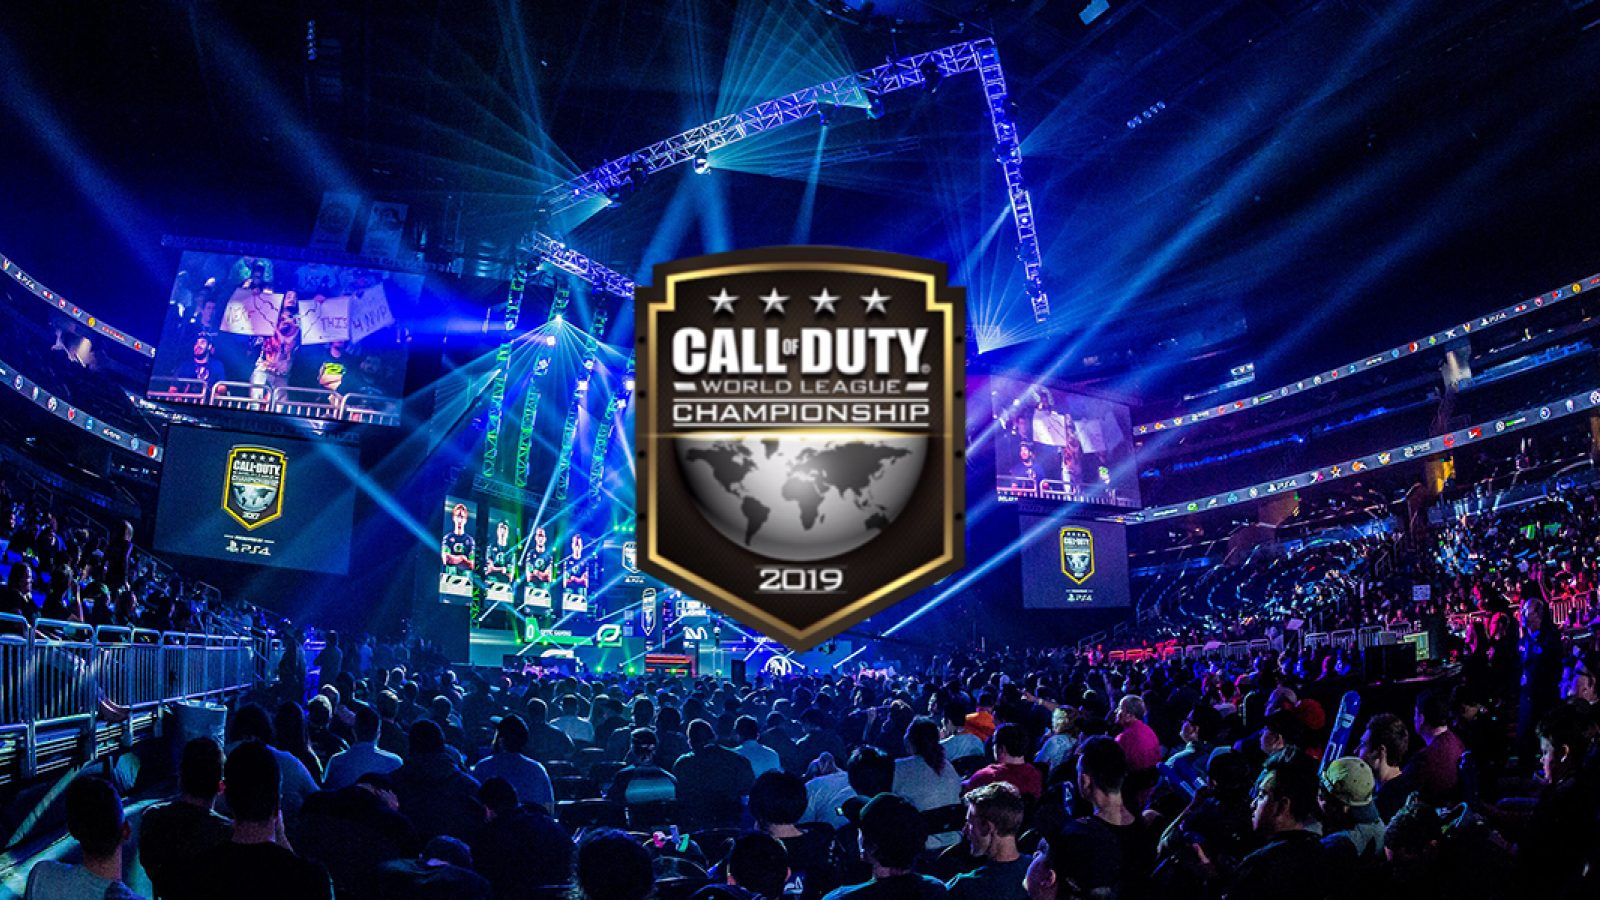 Sony Mobile Partners With Call of Duty with World Championships